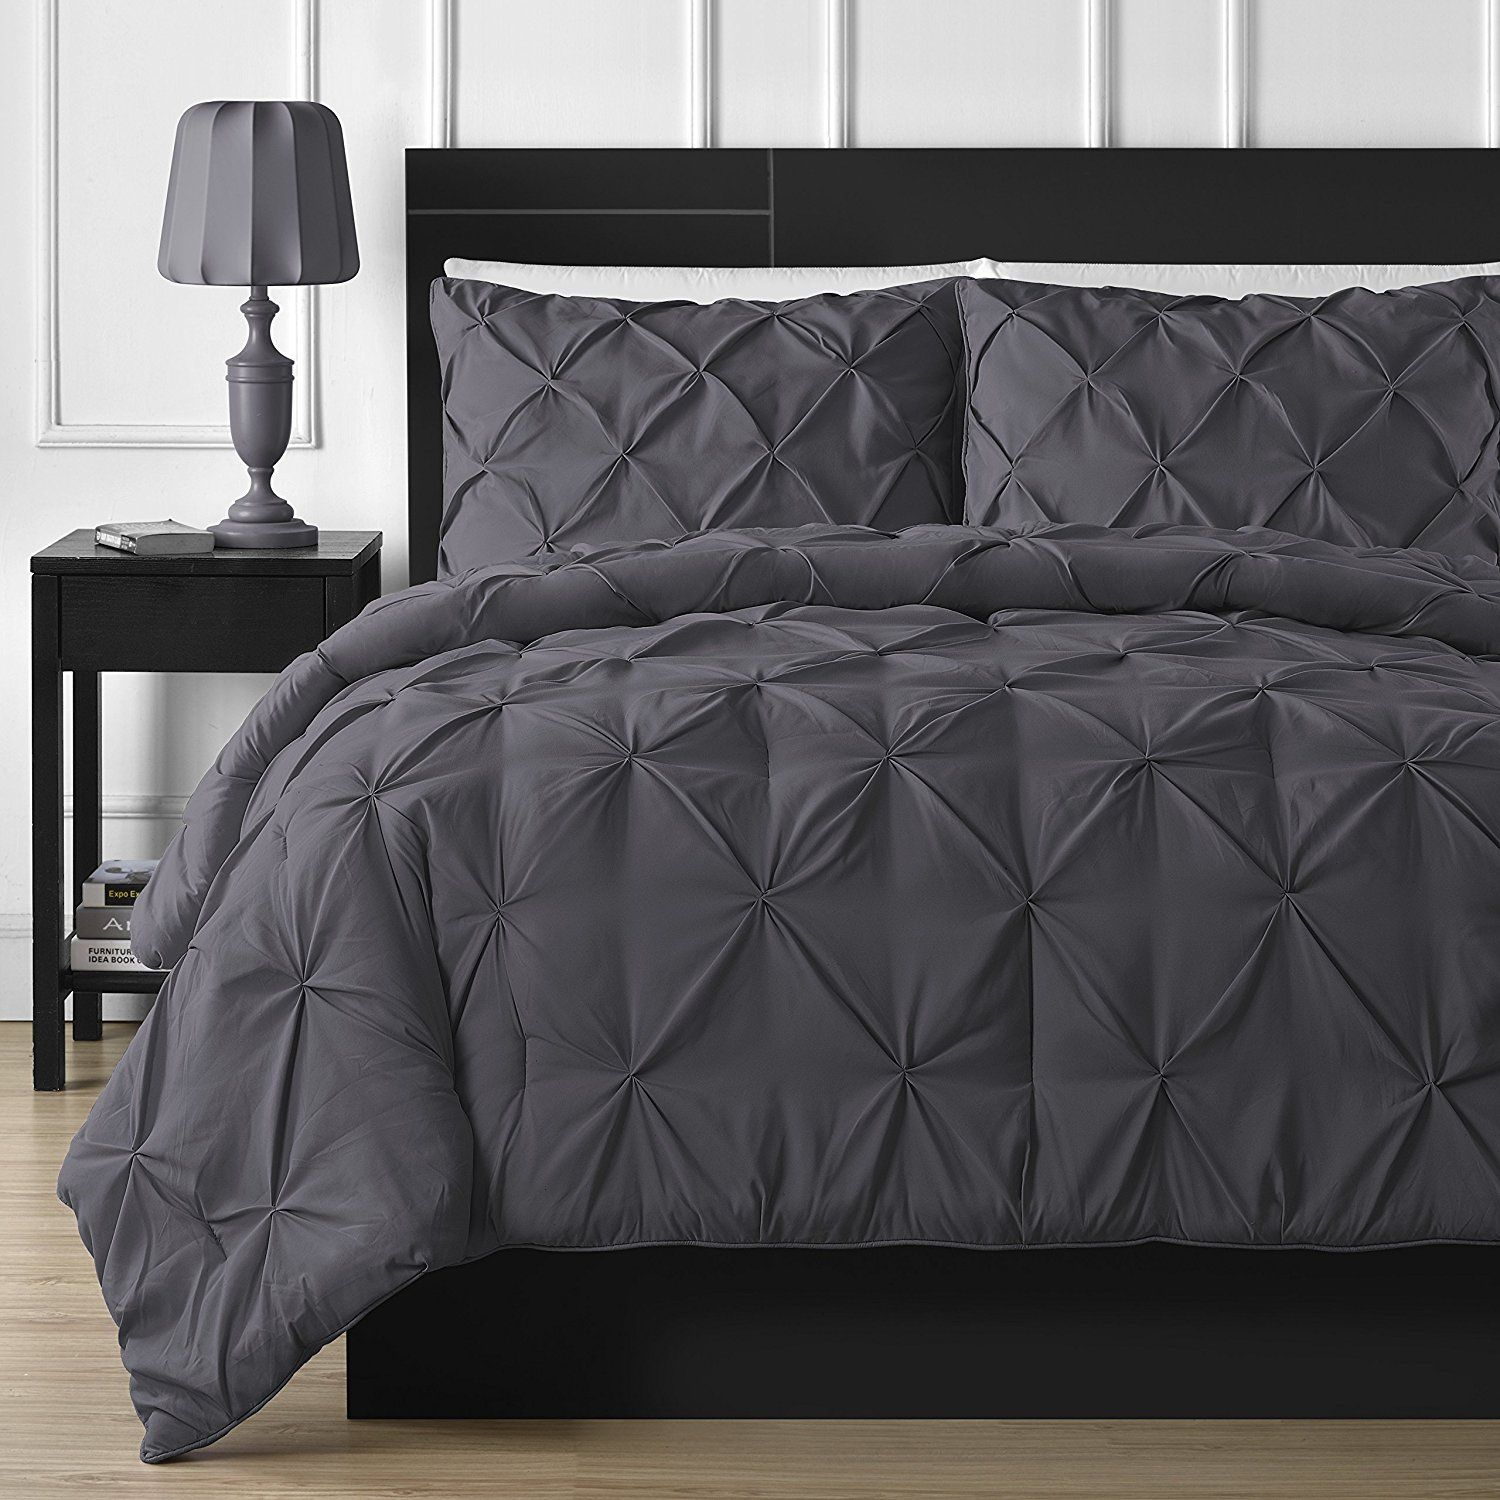 61da27c16158 Double-Needle Durable Stitching Comfy Bedding 3-piece Pinch Pleat Comforter  Set (Full, Gray